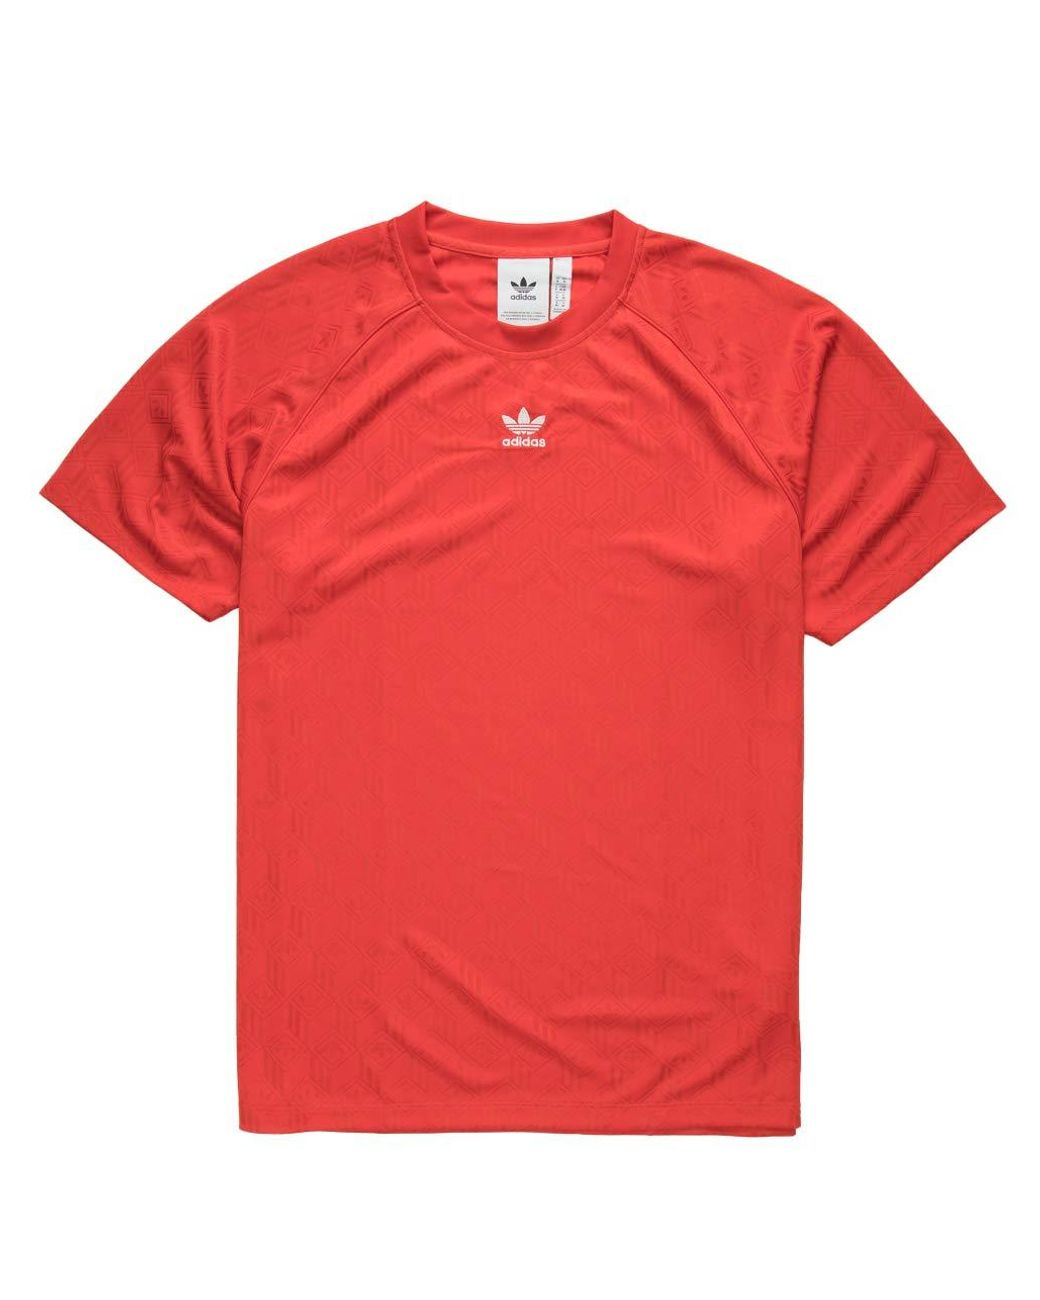 adidas Originals Mono Jersey Polo in Red for Men - Lyst